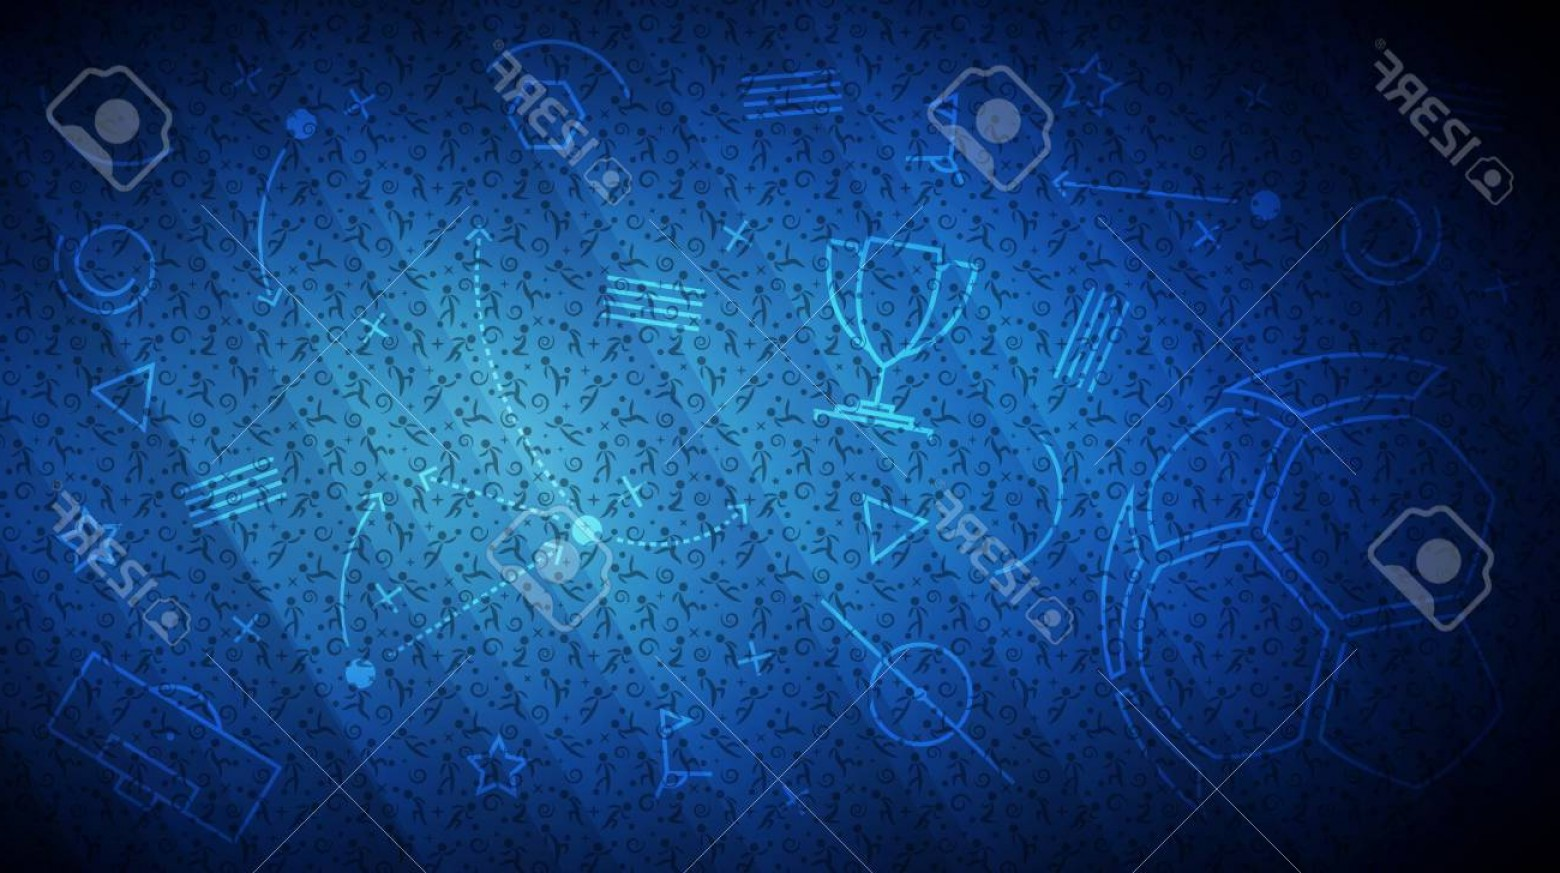 Soccer Blue Background Vector Graphics: Photostock Vector Football Championship Background Vector Illustration Of Abstract Blue Soccer Background With Differe